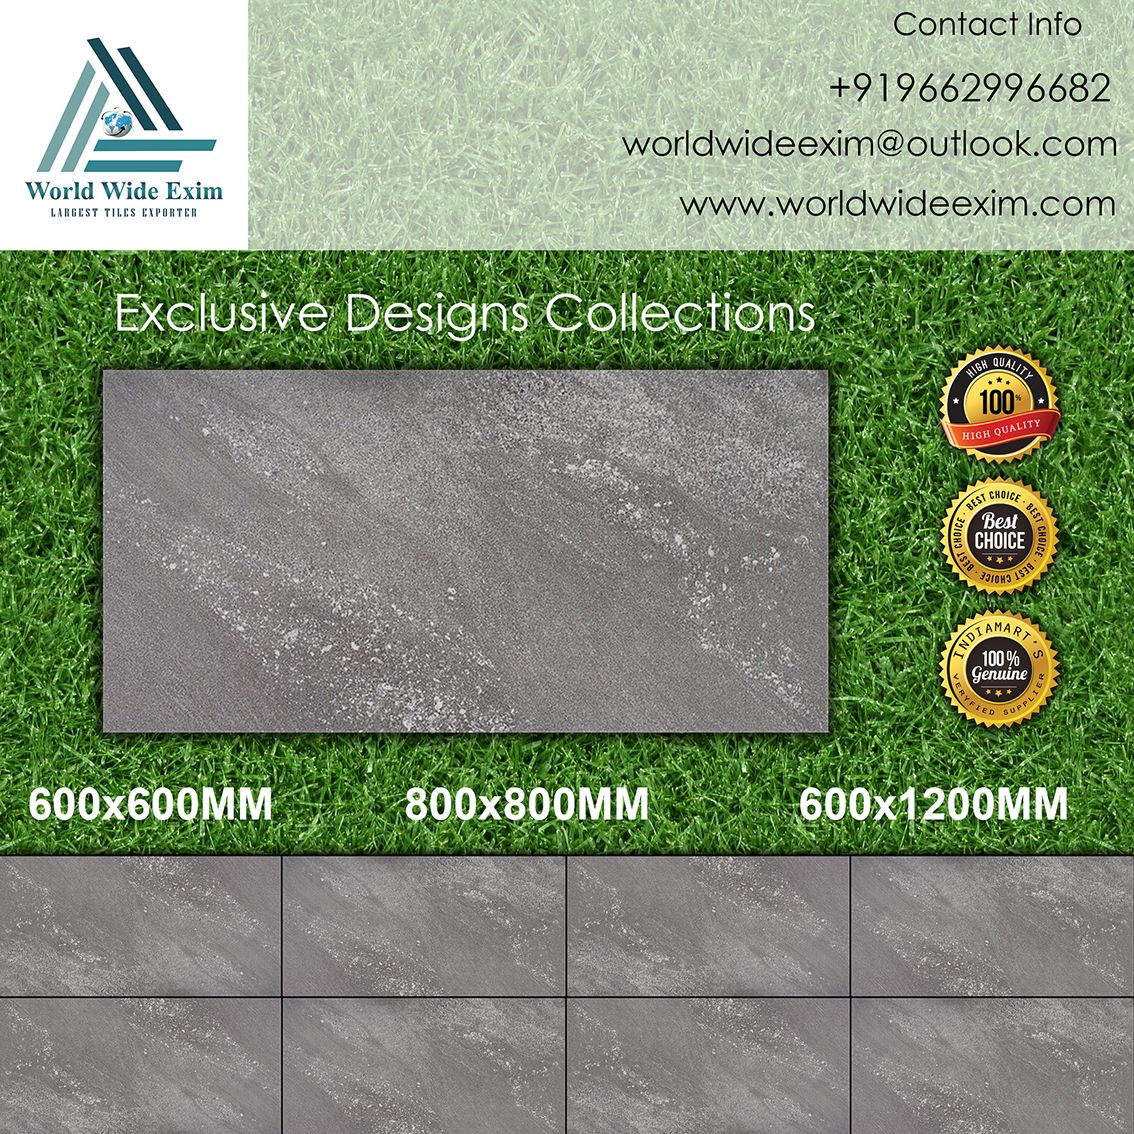 Manufacturer of Ceramic Wall&Floor Tiles,From INDIA.and We Export in ...